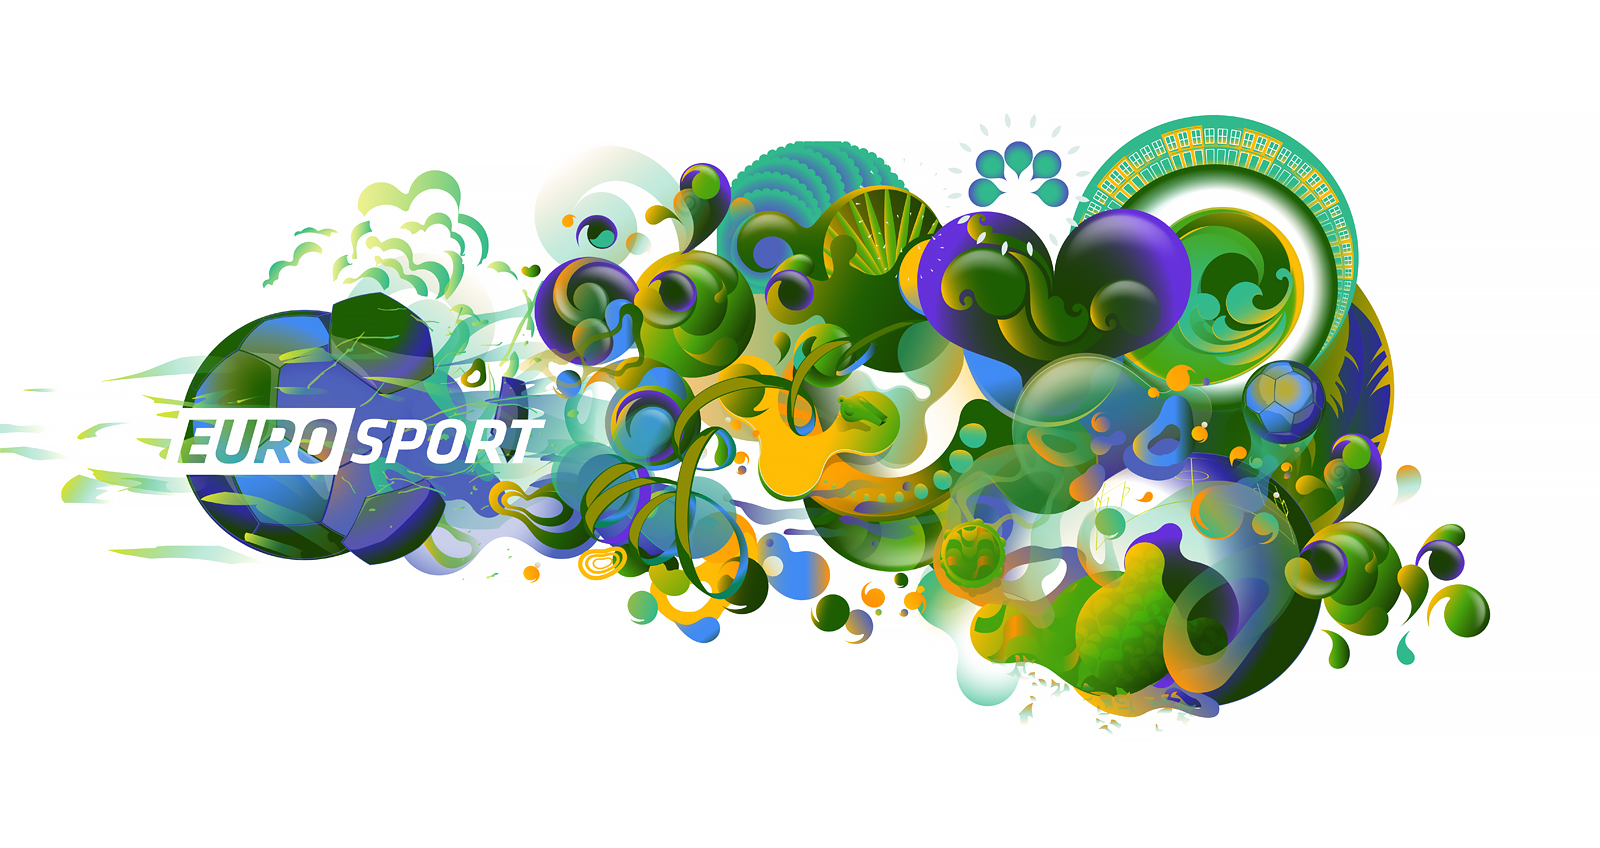 world cup, eurosport, adhemas batista, directory of illustration, graphic design, illustration, art